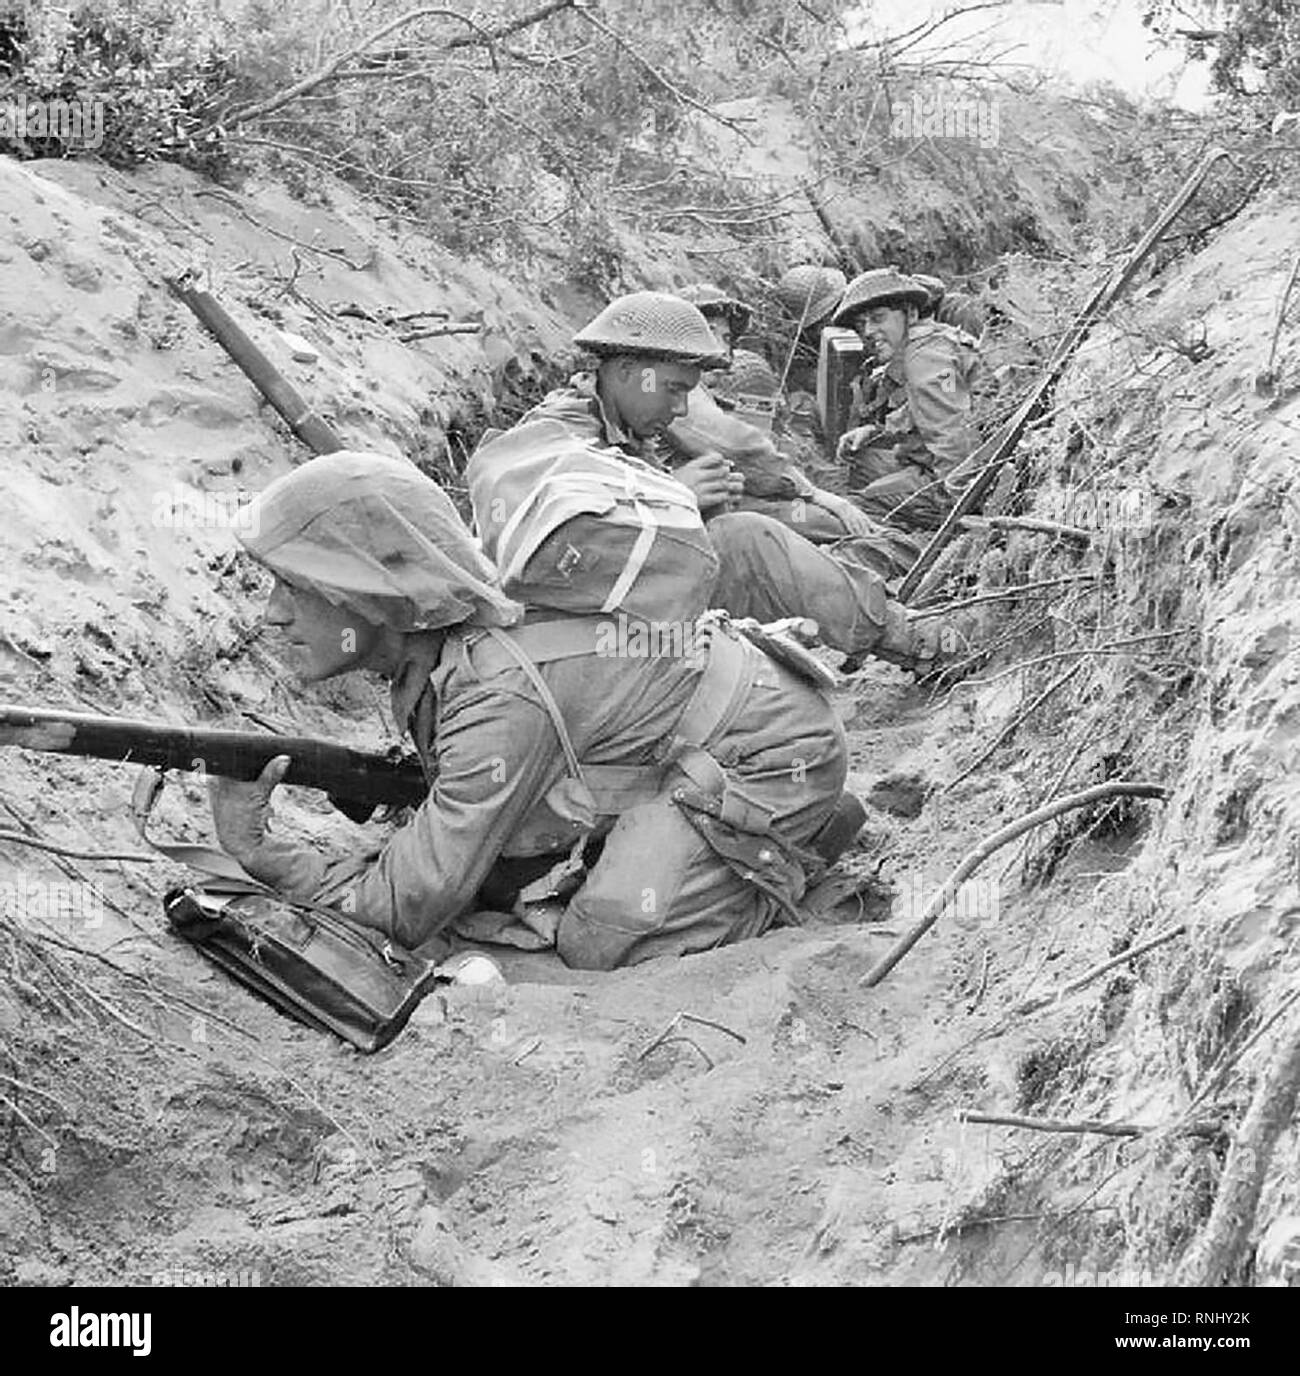 Men of 'D' Company, 1st Battalion The Green Howards, 5th Infantry Division, occupy a captured German communications trench during the offensive at Anzio, 22 May 1944. - Stock Image